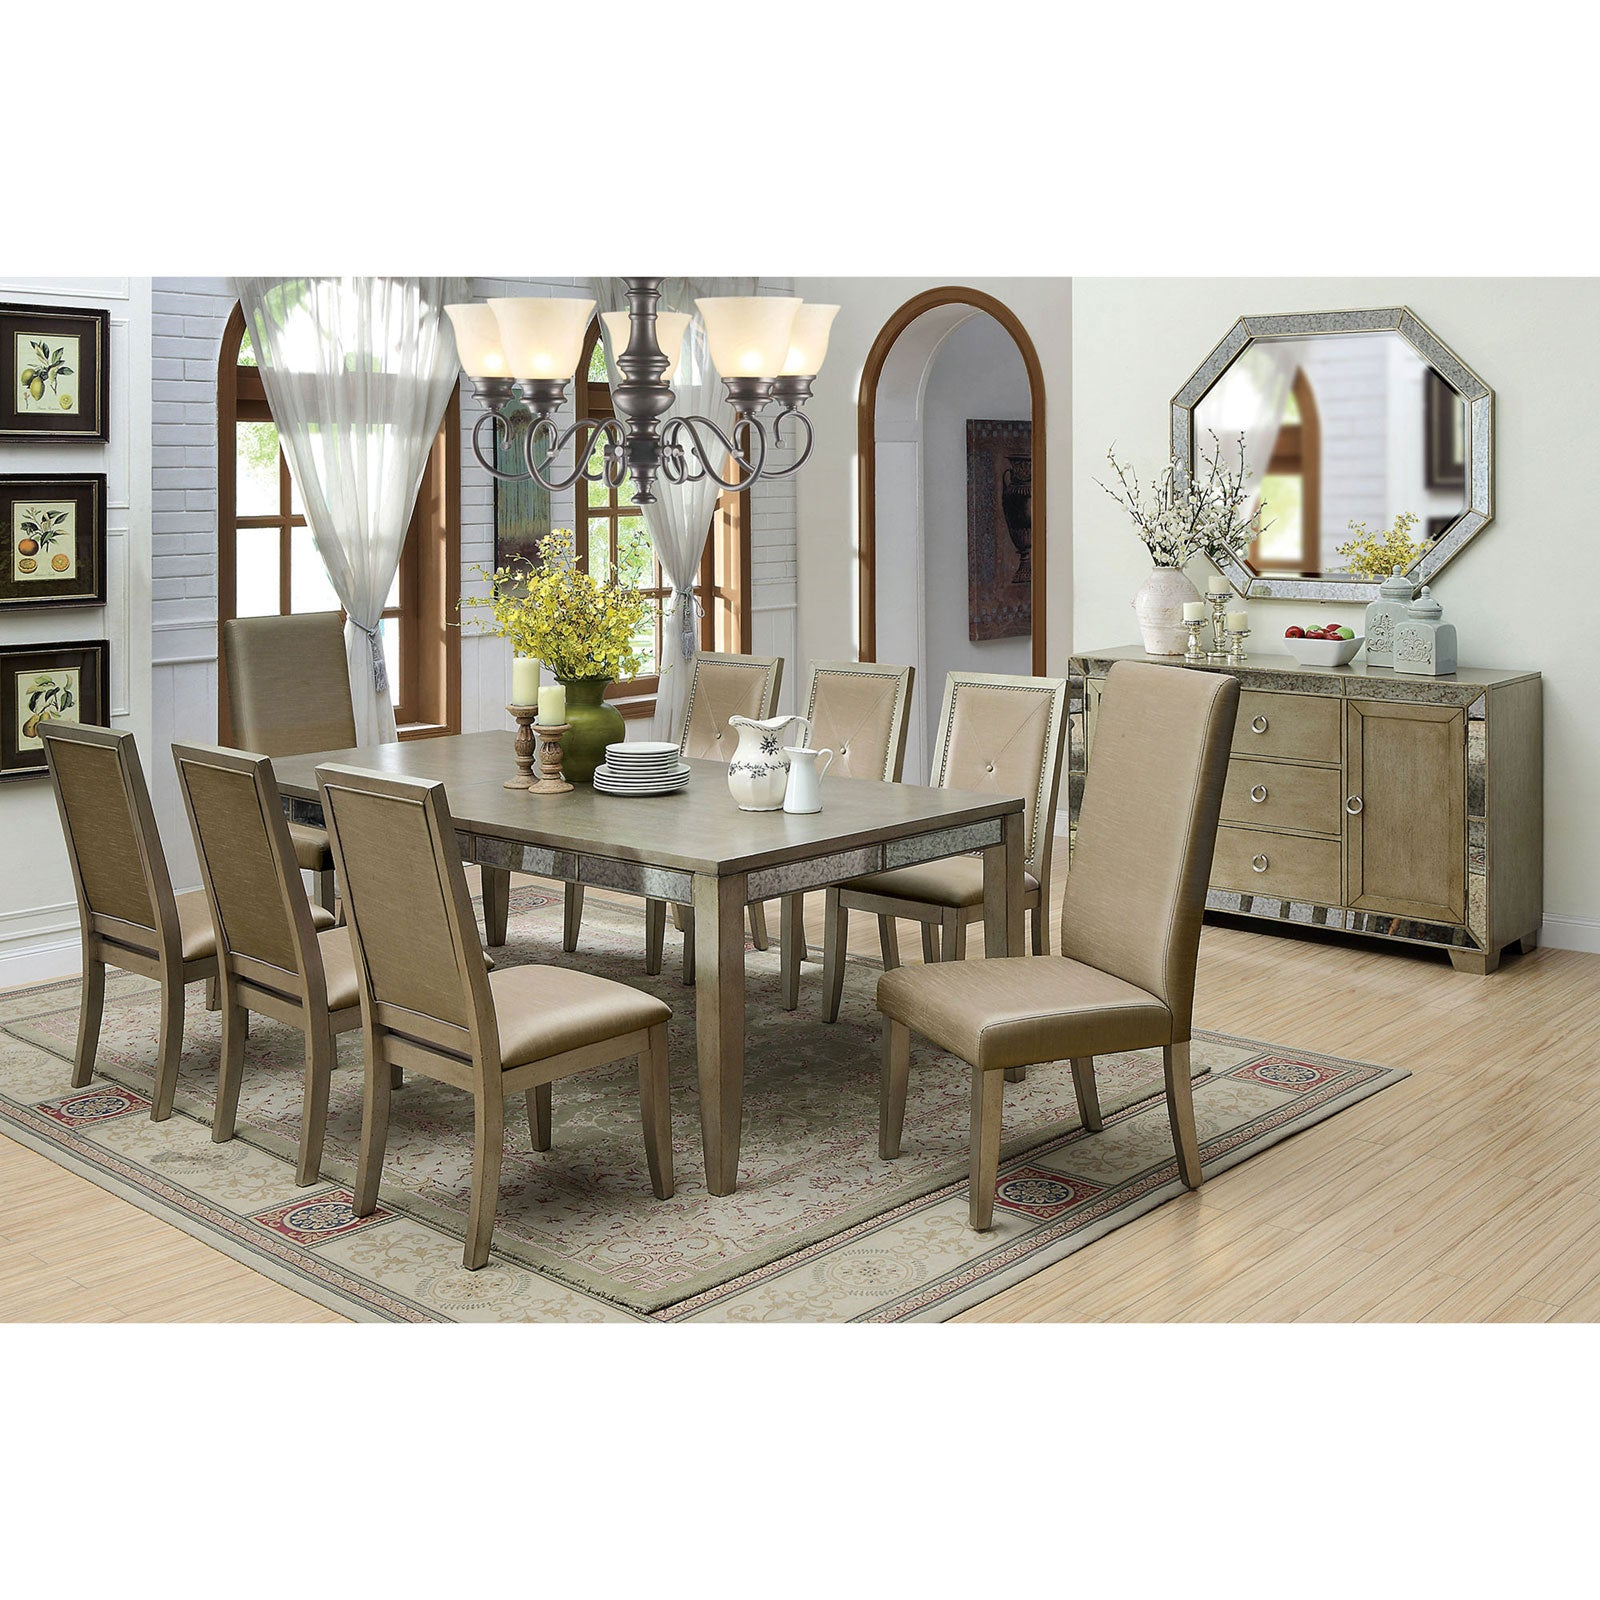 Echo 9 Pc. Dining Table Set (2MC+6SC) - InteriorDesignsToGo.com